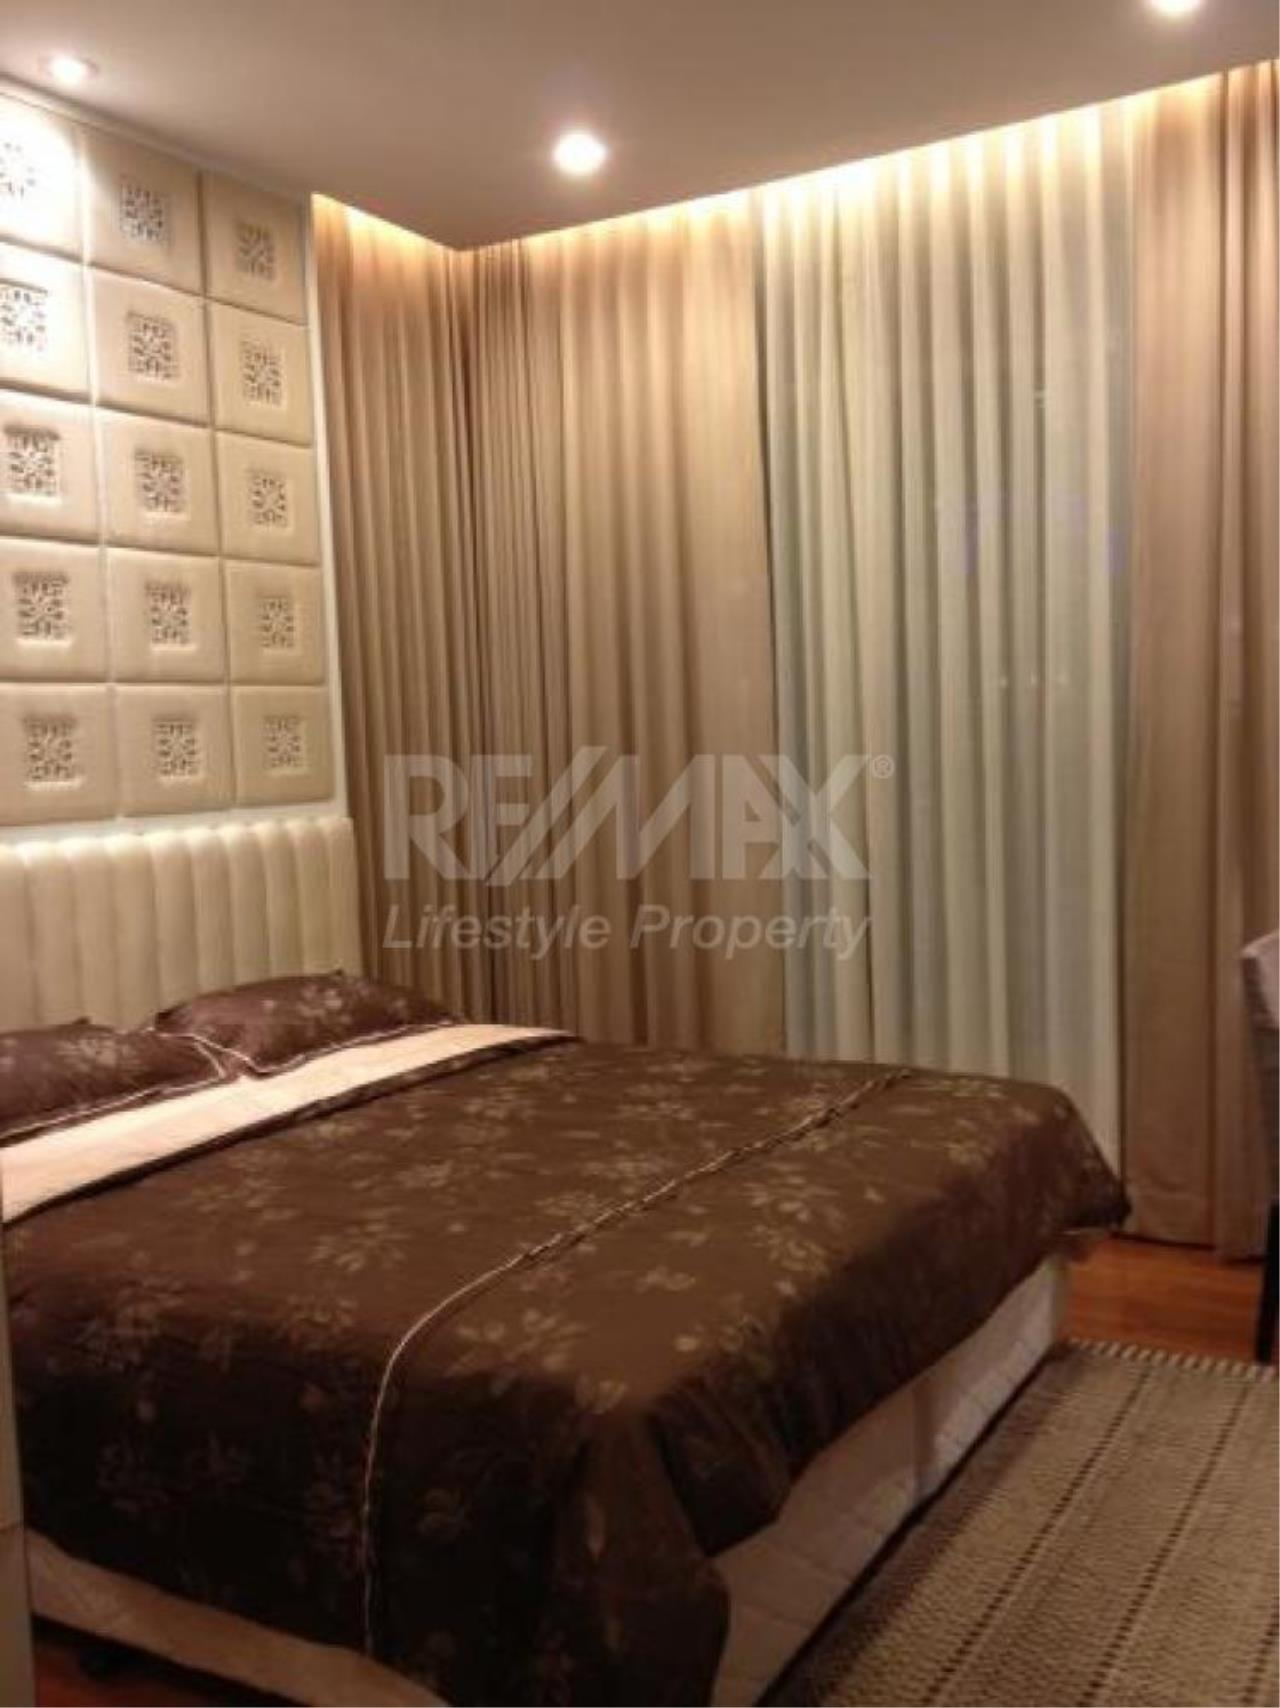 RE/MAX LifeStyle Property Agency's Oriental Residence 5